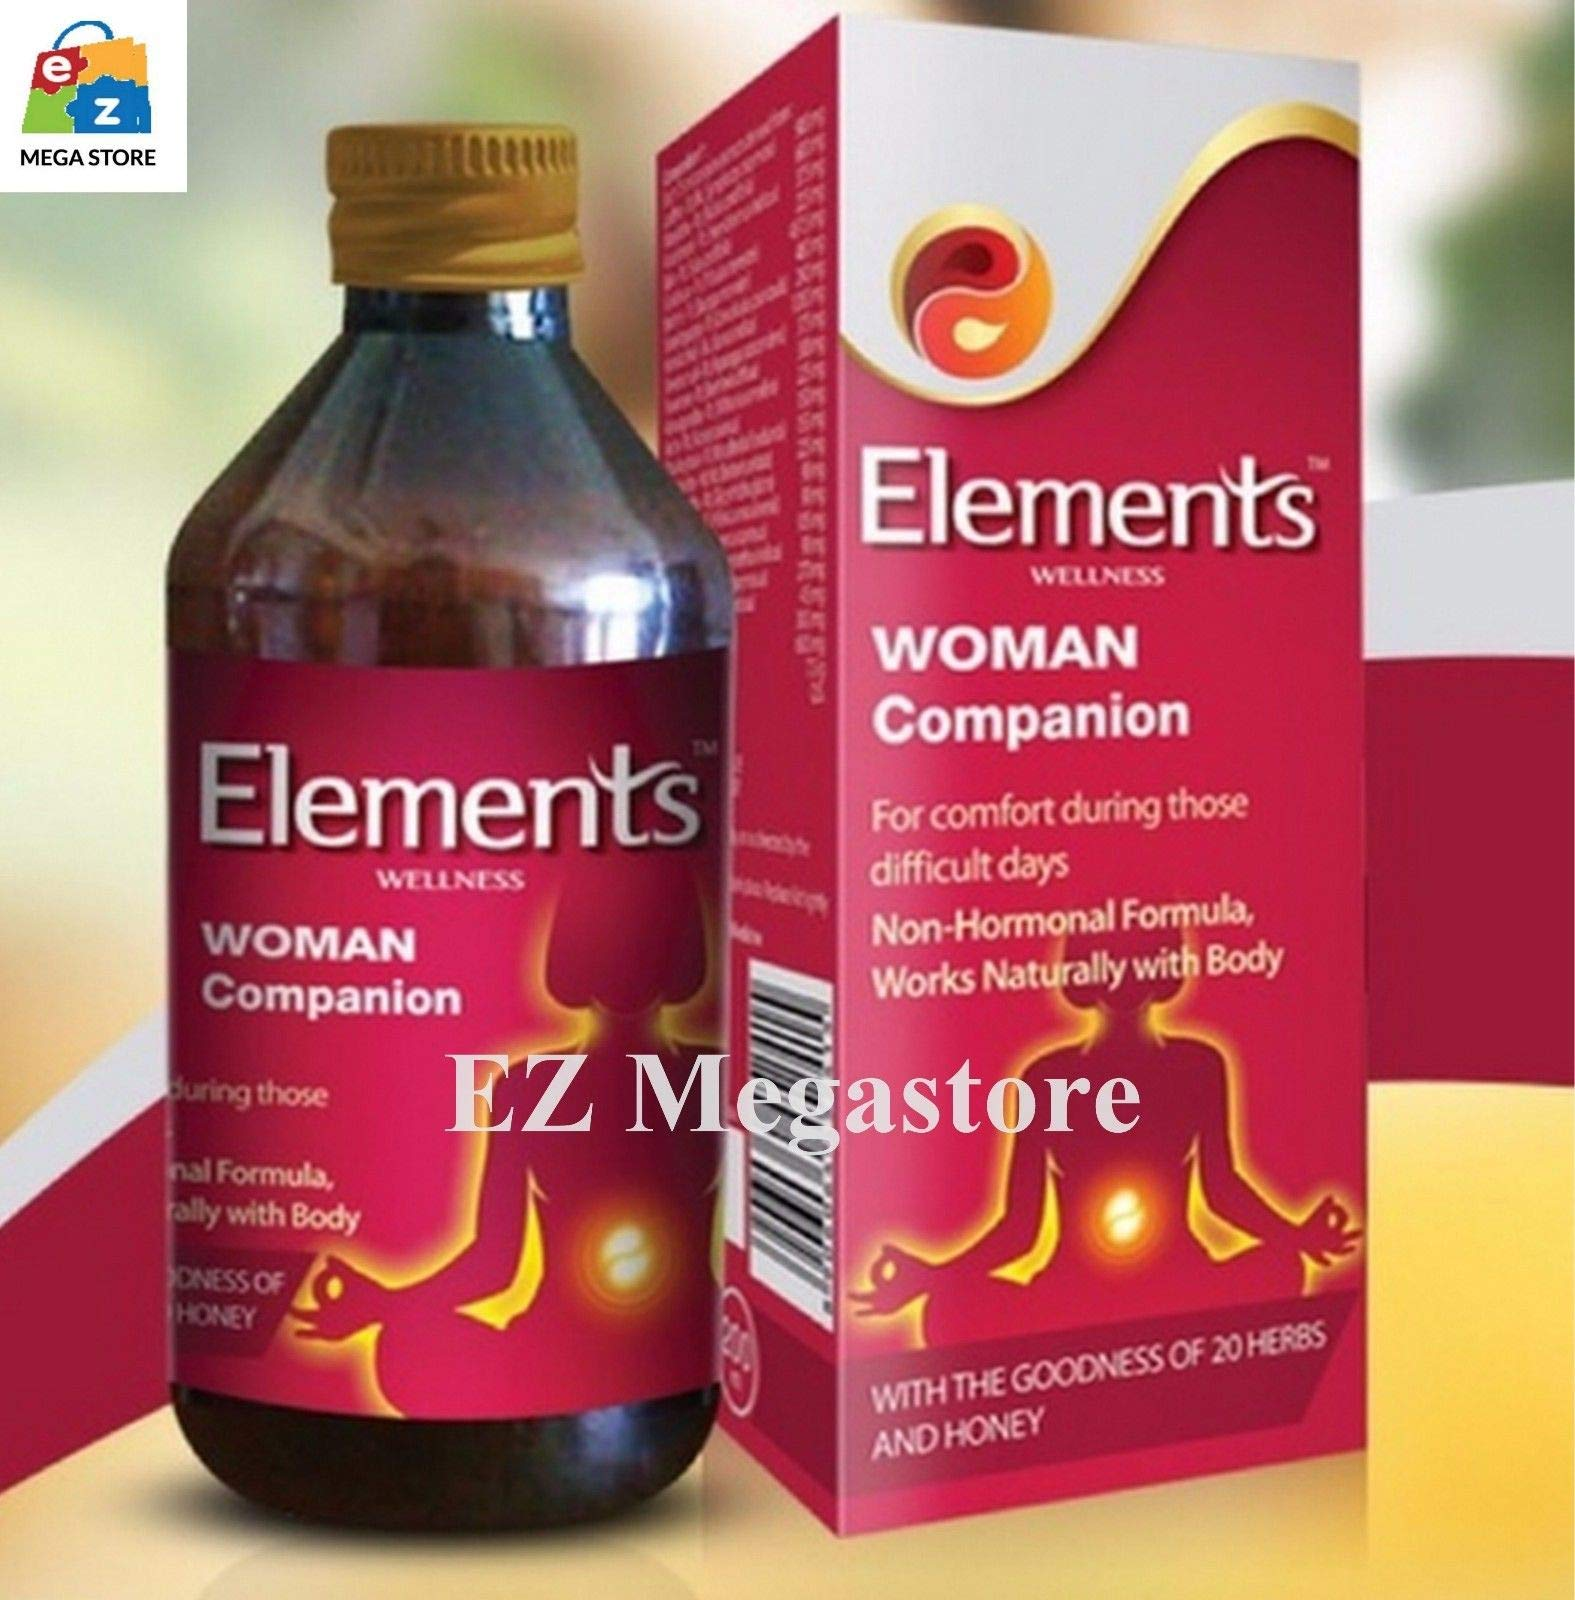 Elements Willness Woman Companion - 200 Milliliters product image